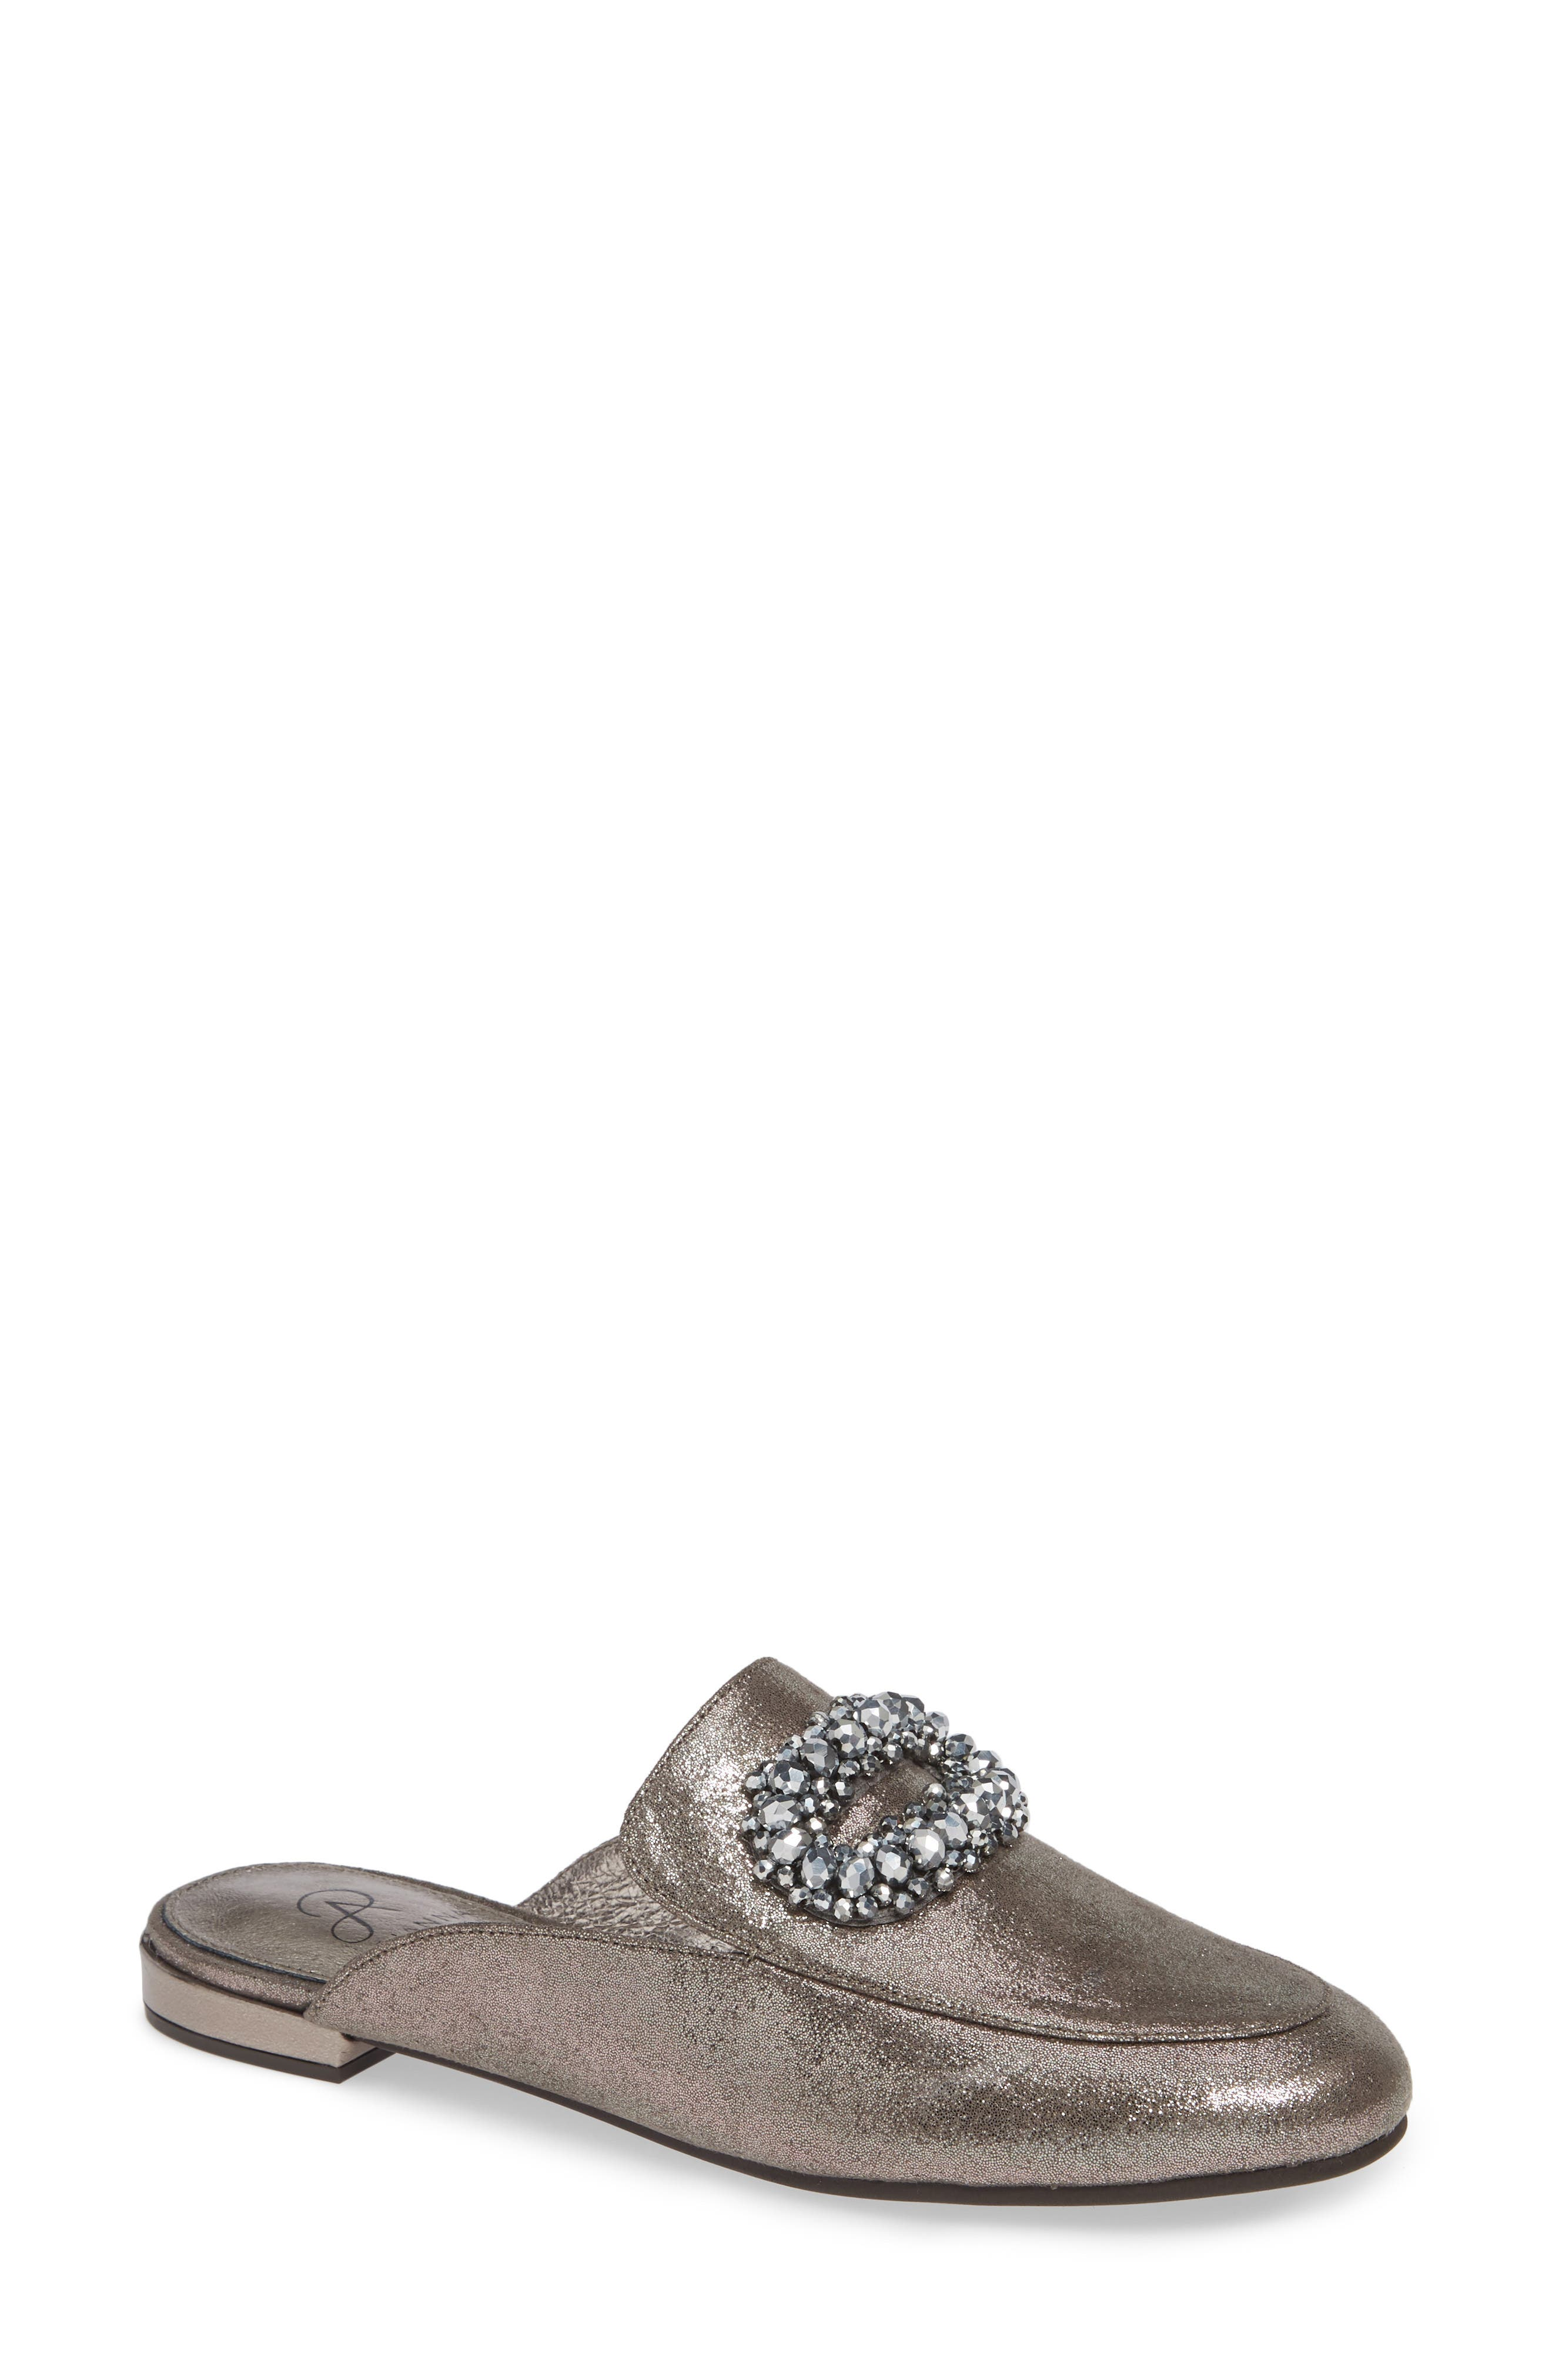 ADRIANNA PAPELL Becky Mules With Bow Detail in Pewter